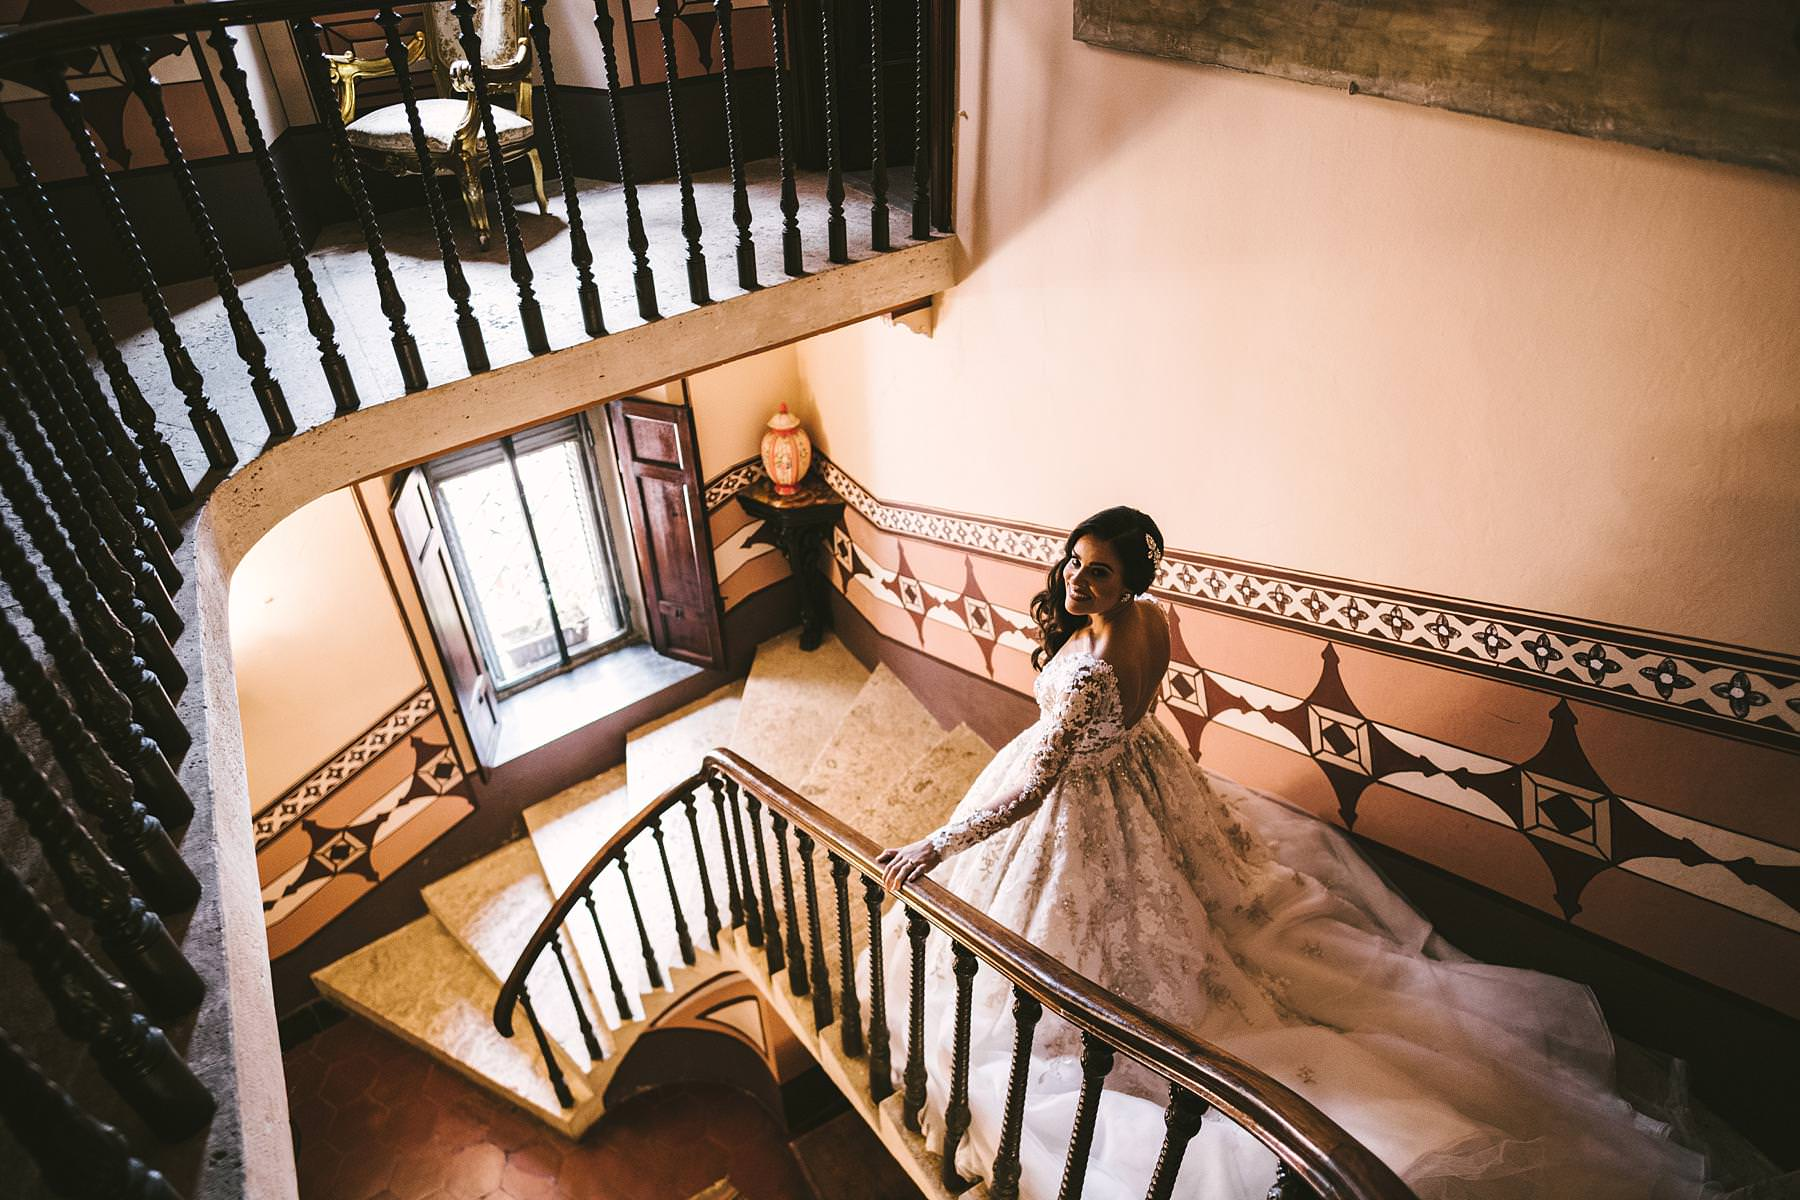 Rippling and sumptuous Tuscany wedding in the elegant Castle of Valenzano. Gorgeous bride Ilyssa in Ysa Makino elegant dress walks down the staircase of the castle